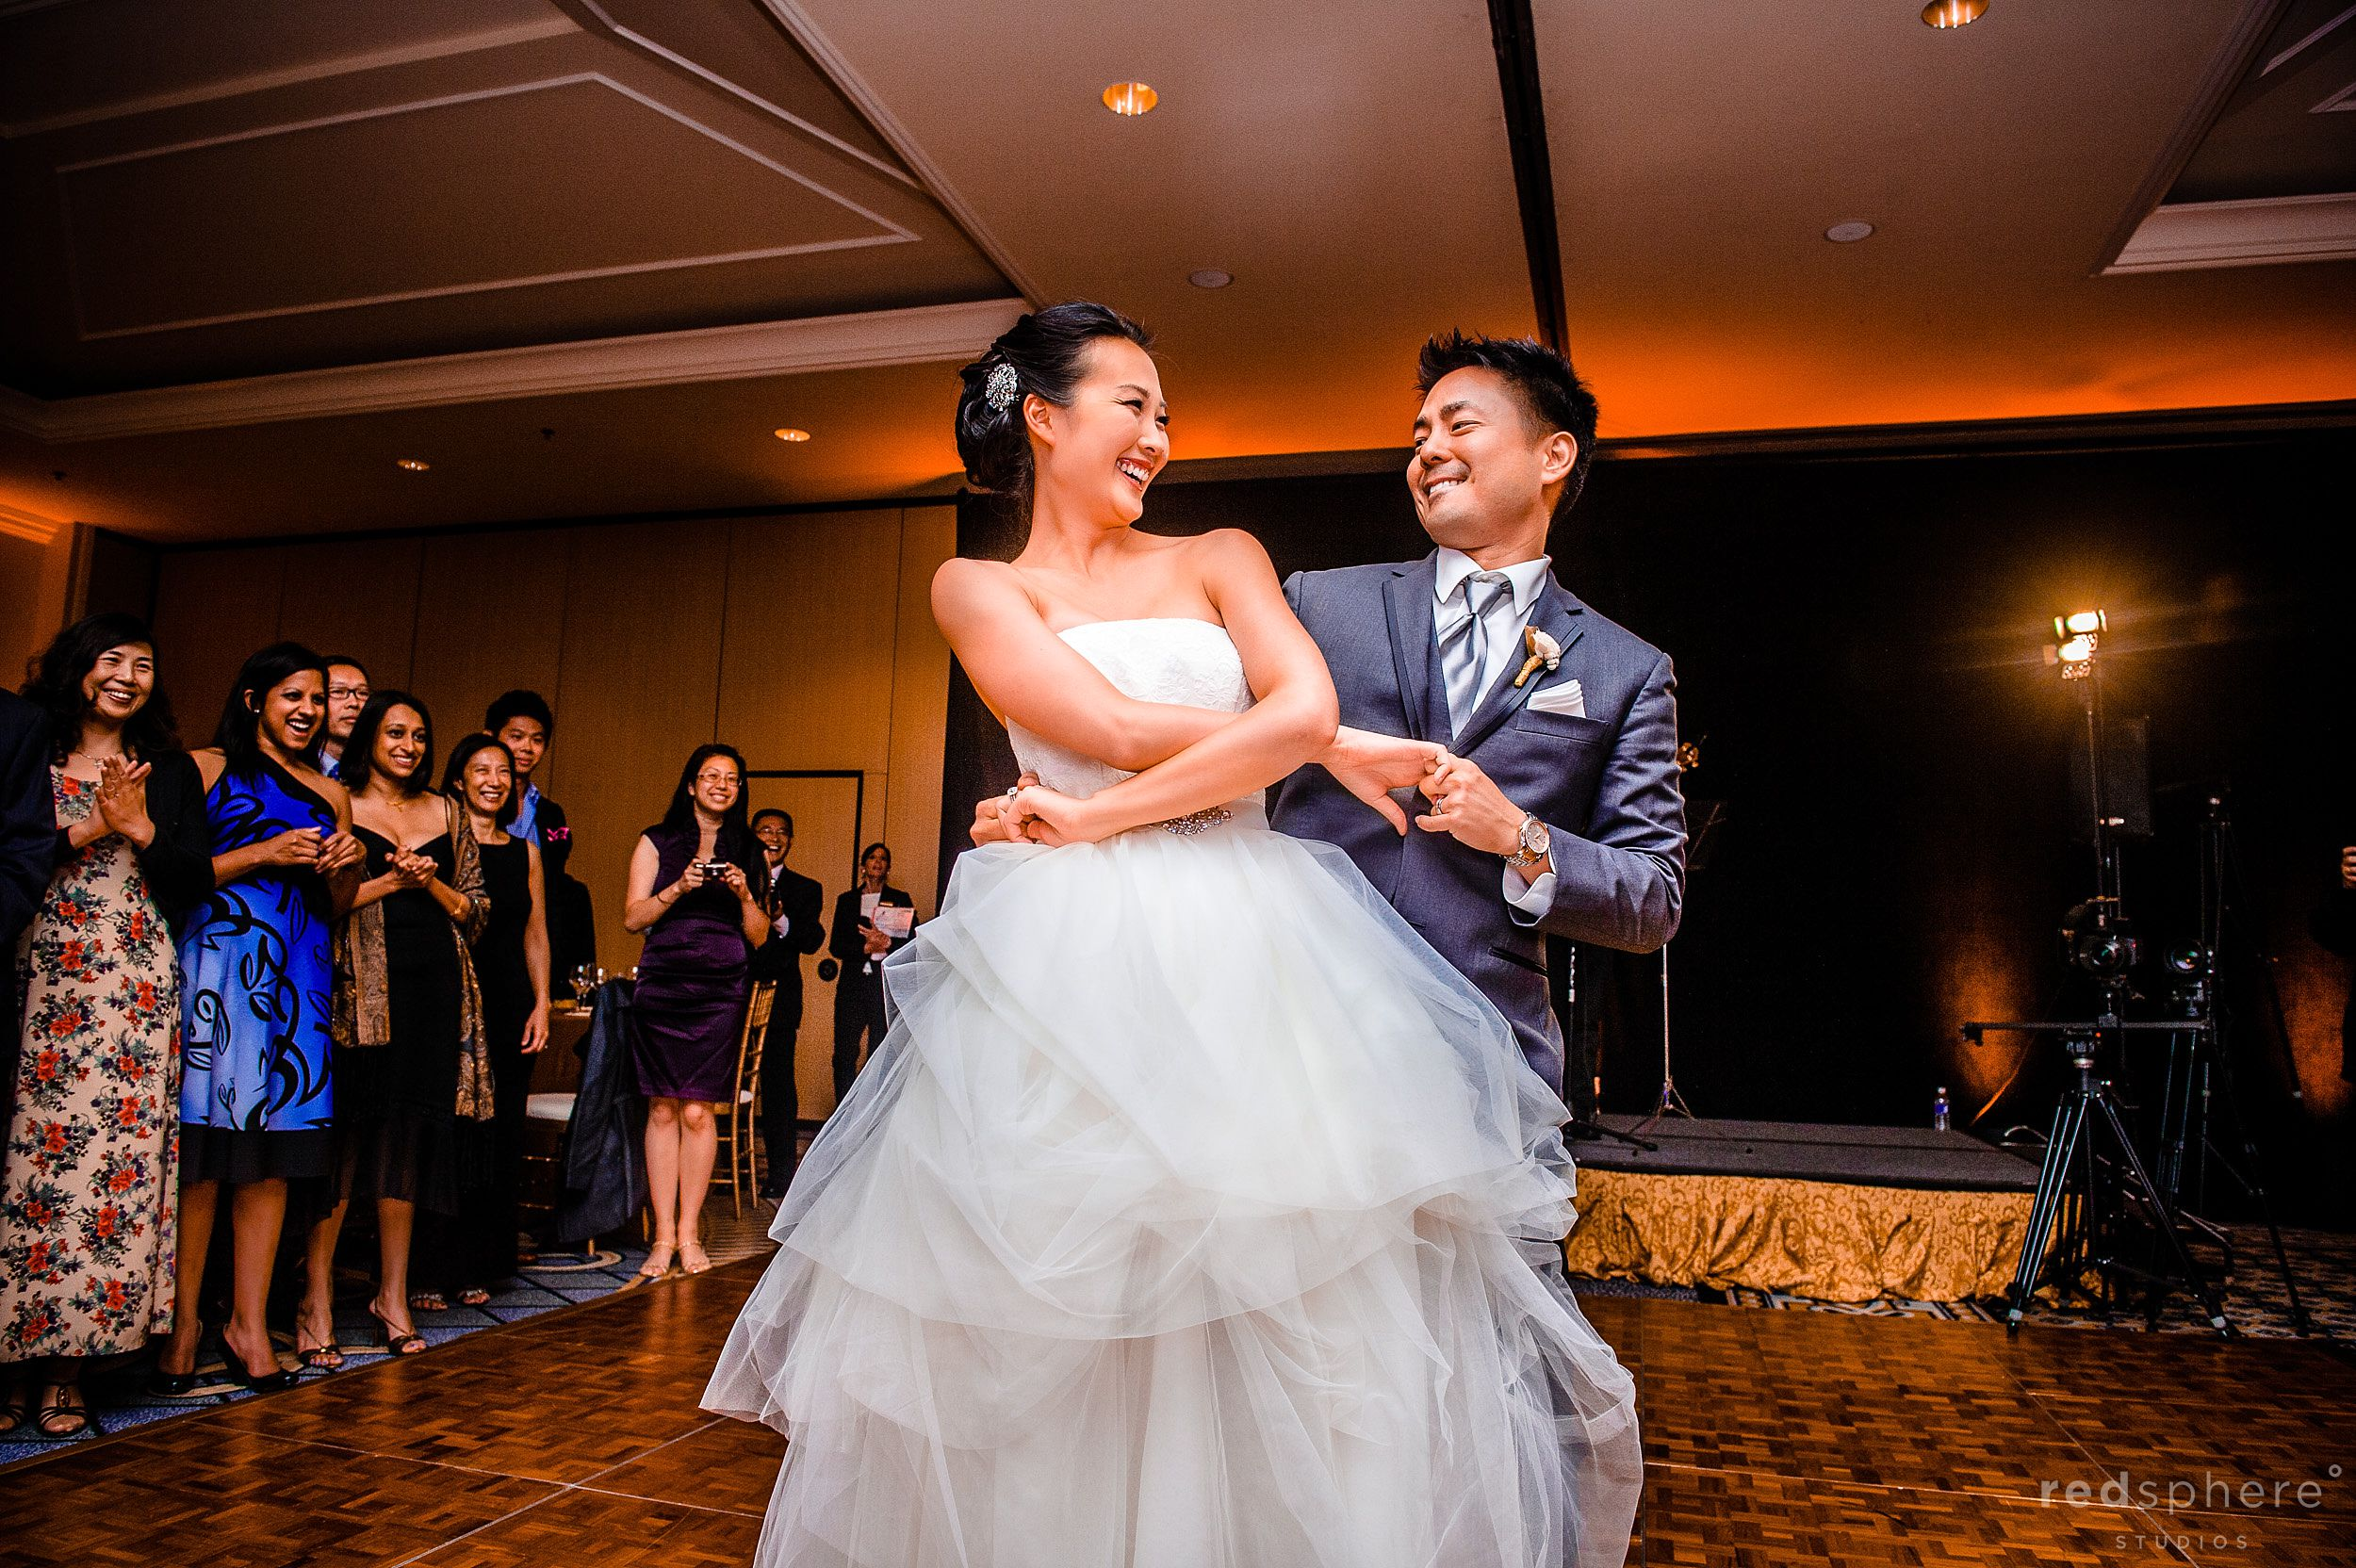 Bride and Groom Doing A Special Dance While on The The Ritz Carlton Ballroom